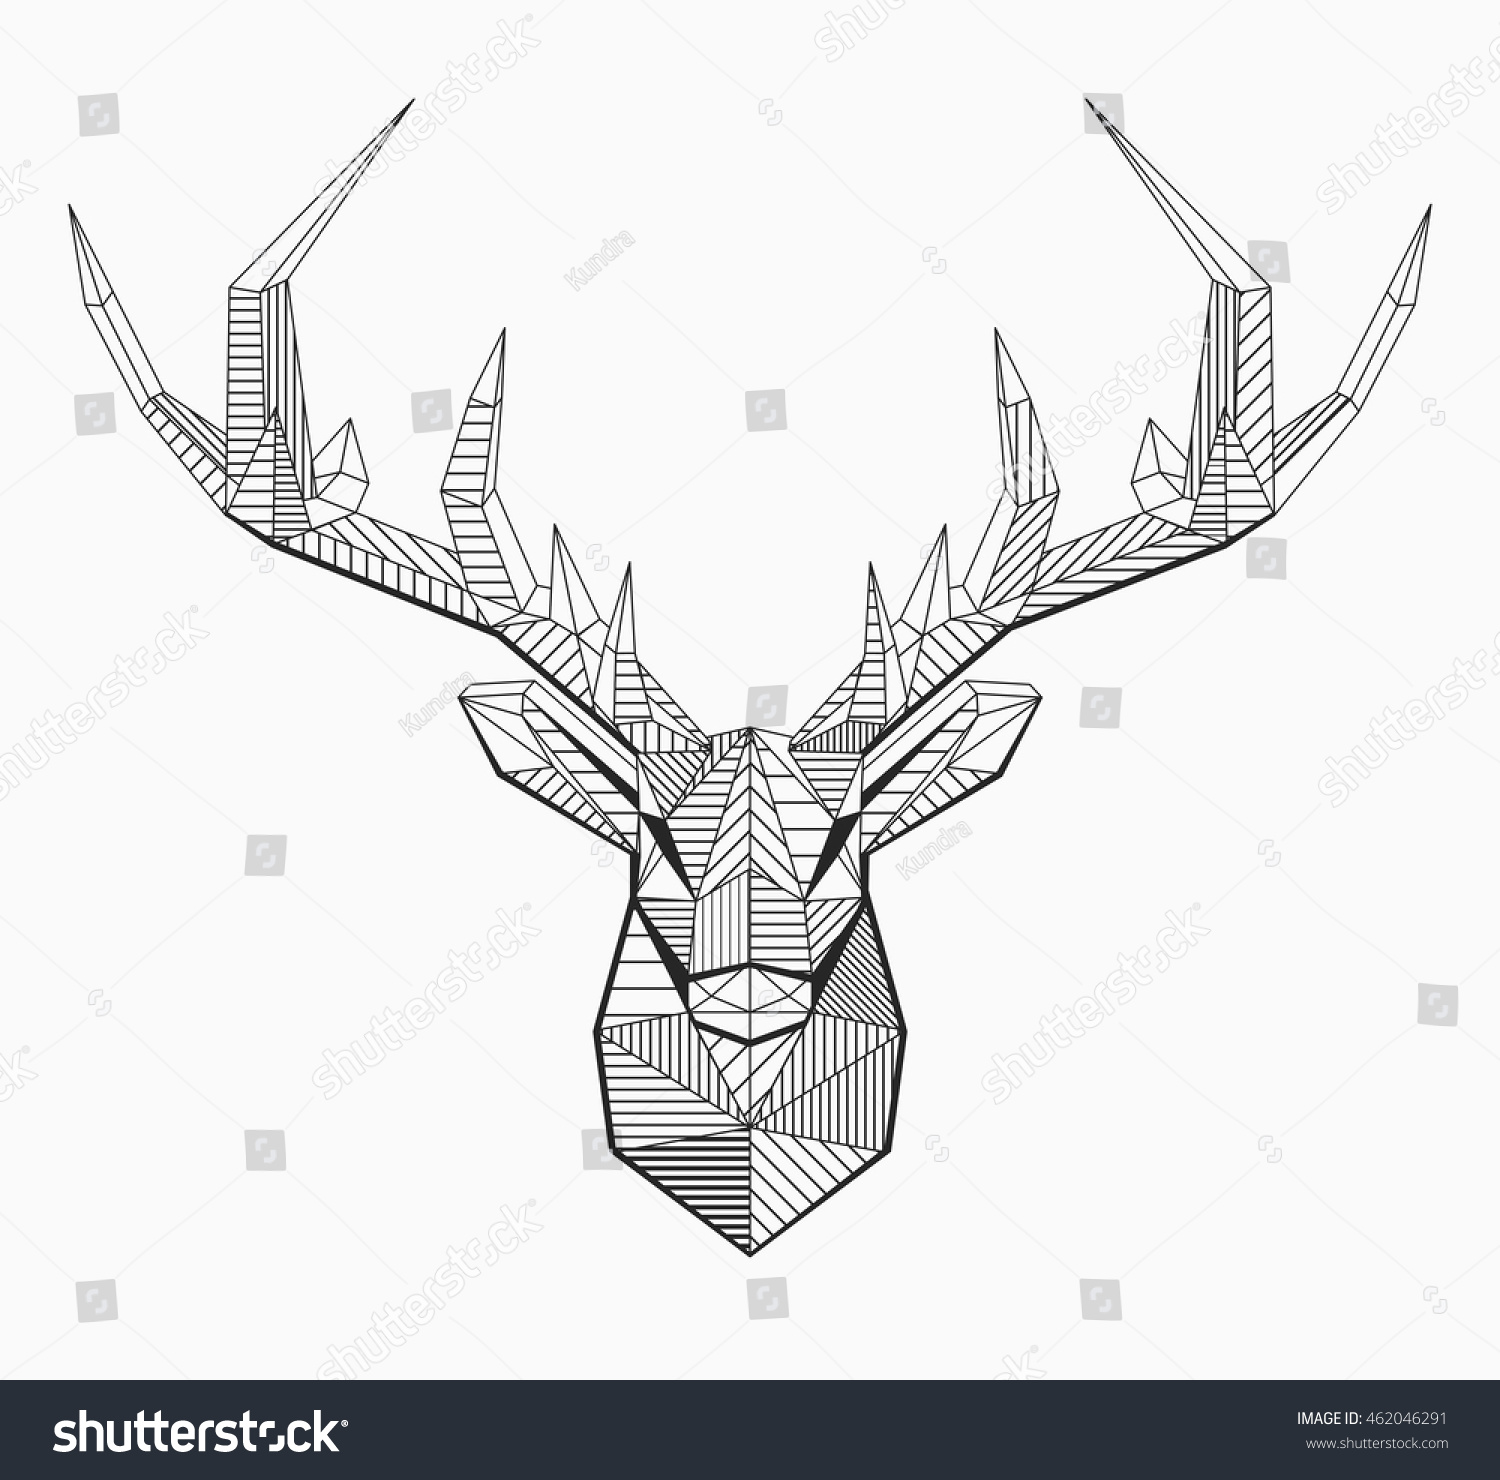 Line Art Geometric : Vector low poly line art geometrical stock